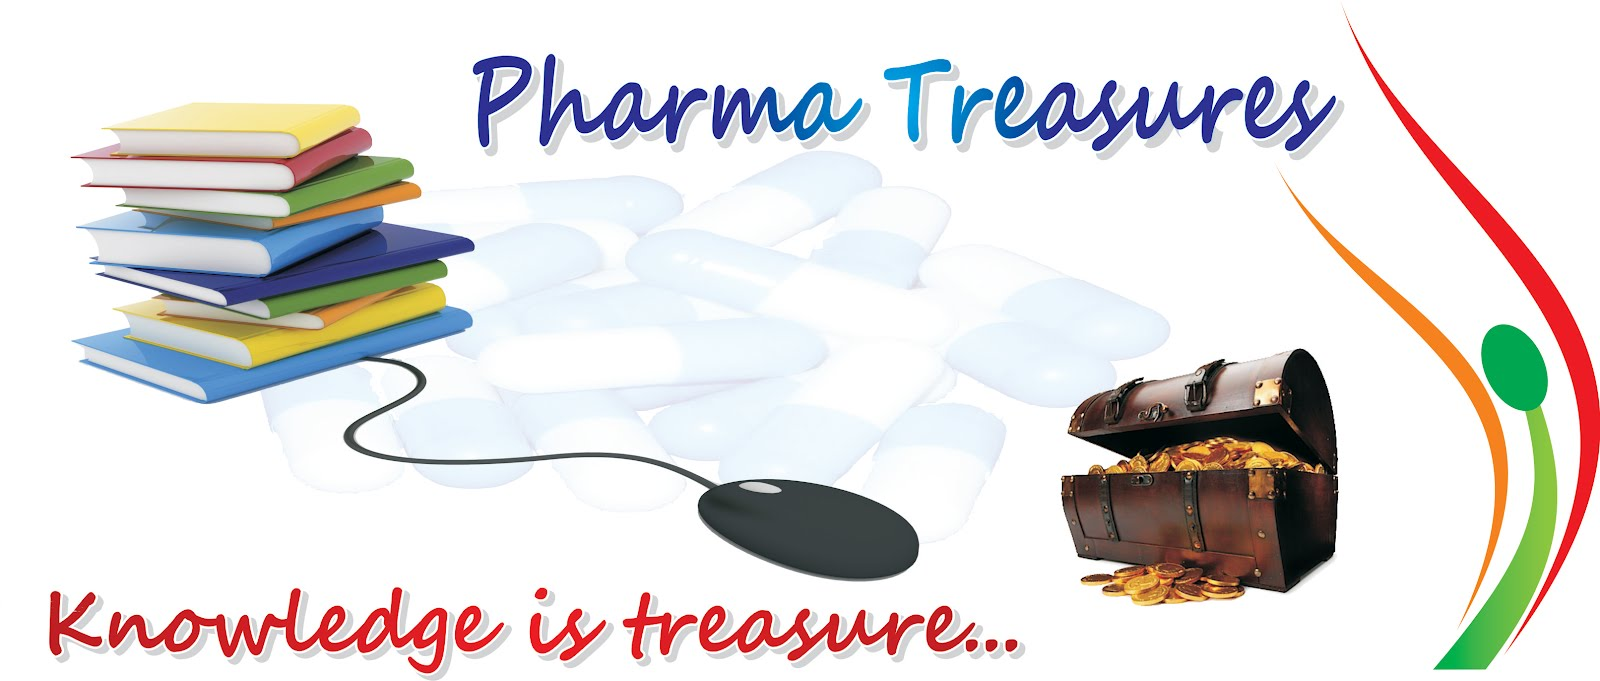 Pharma Treasures